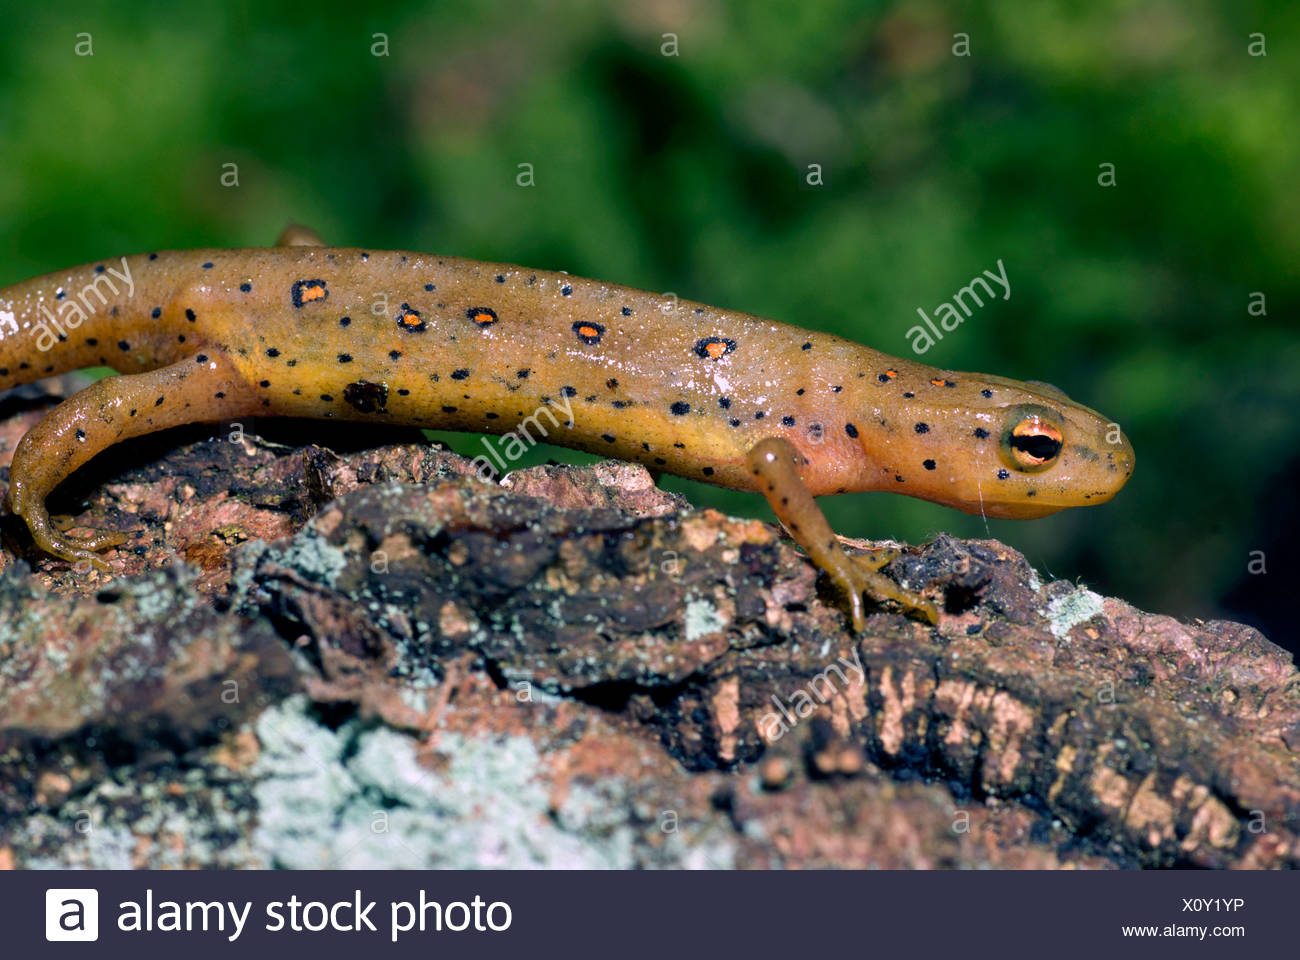 eft, red-spotted newt, red eft, eastern newt (Notophthalmus viridescens), on a branch Stock Photo